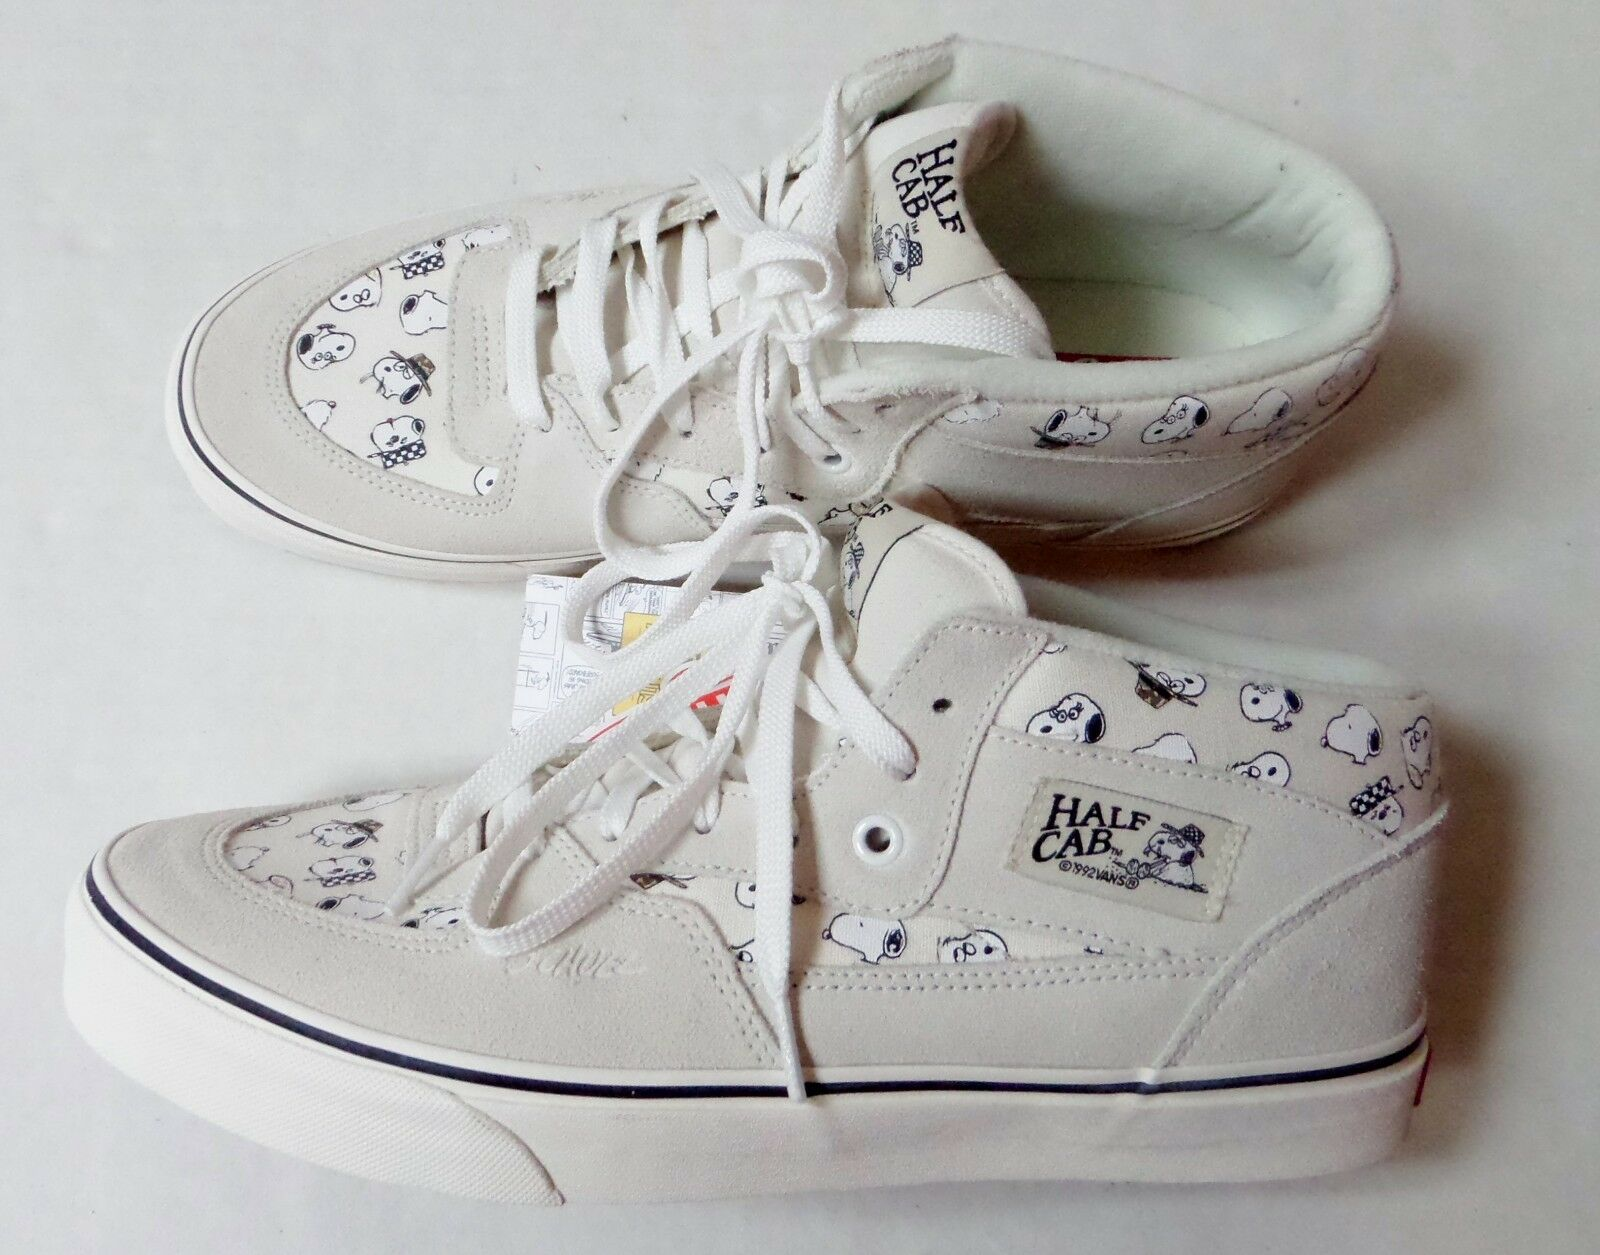 Vans Peanuts HALF CAB Snoopy Spike Suede Shoes